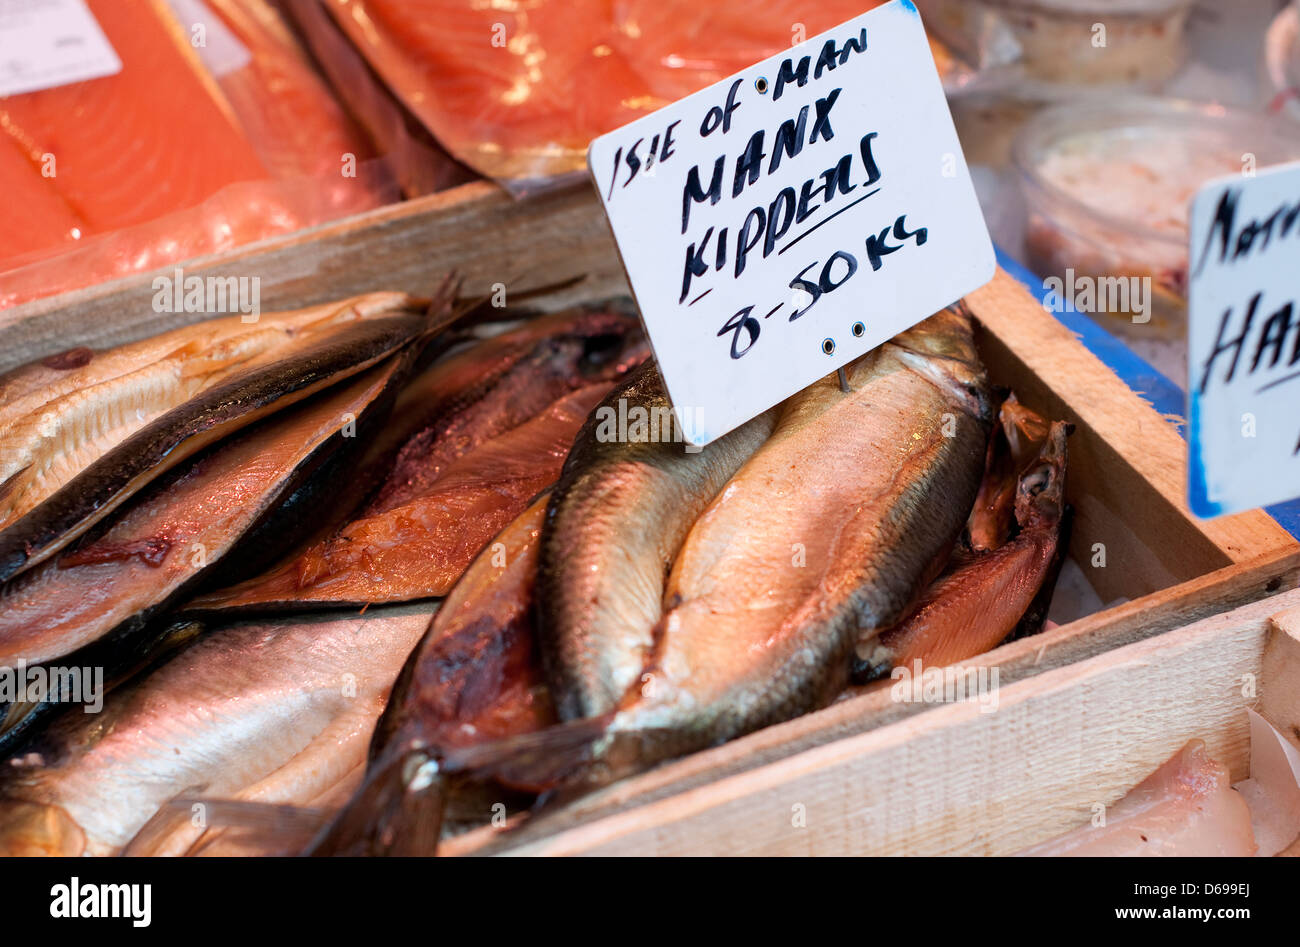 manx kippers in wooden box - Stock Image